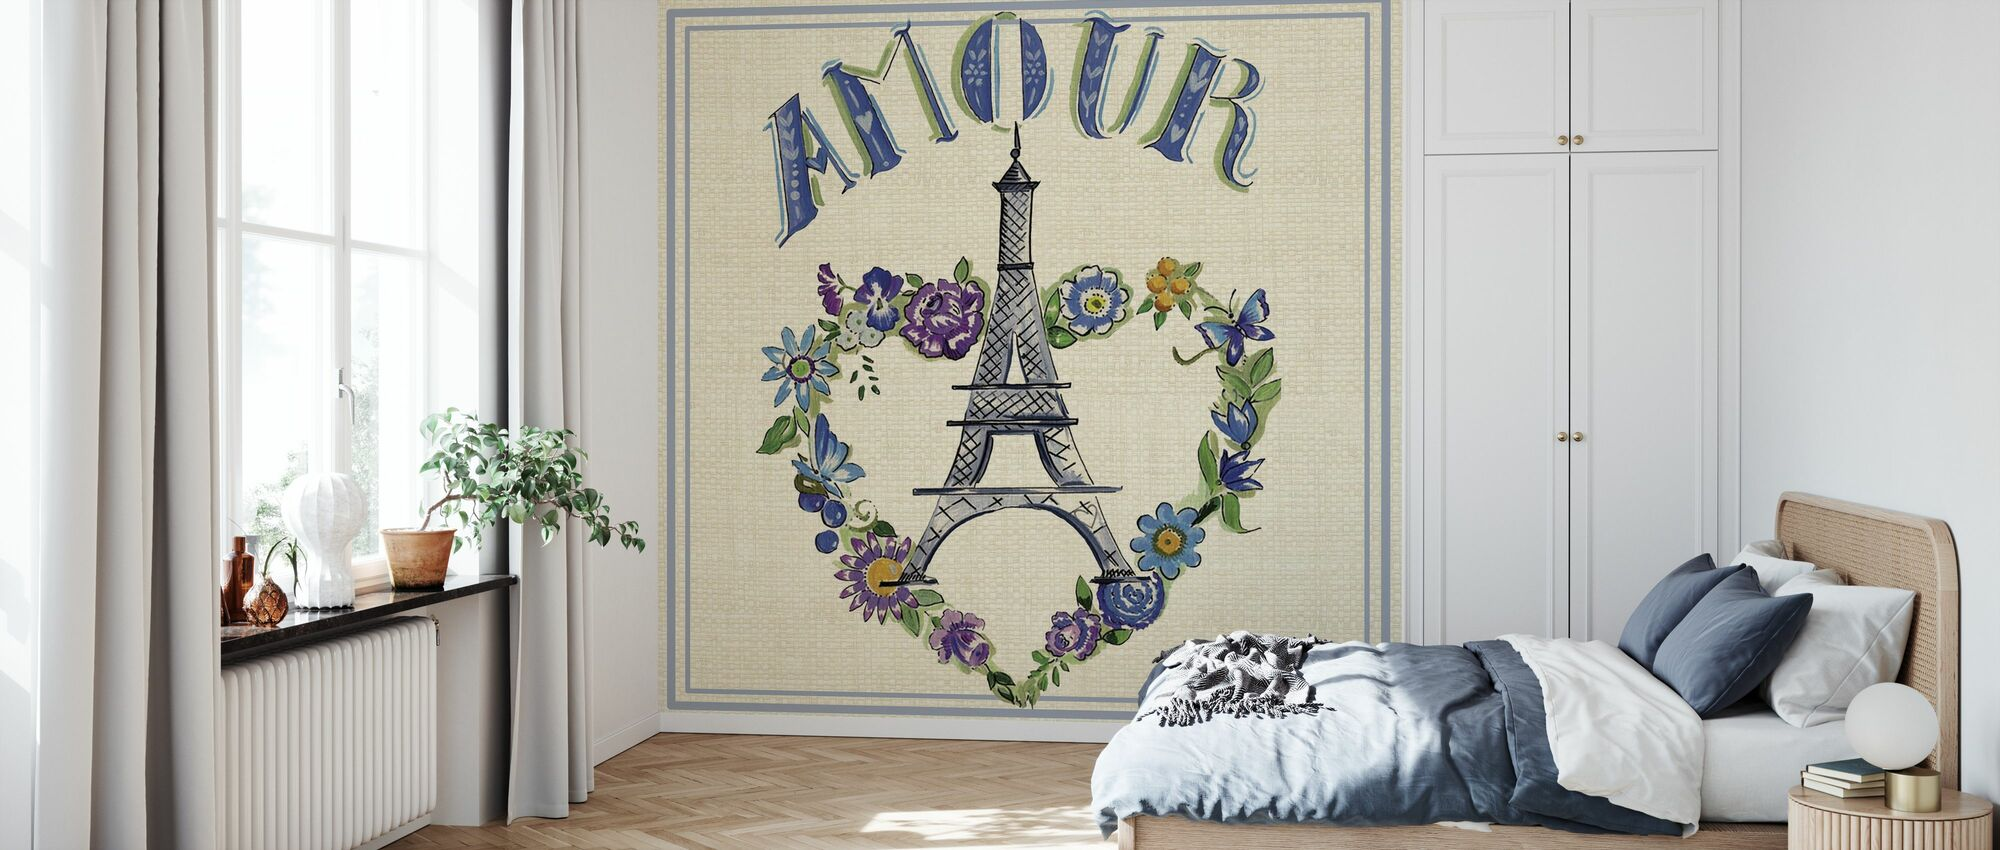 Travel Amour - Wallpaper - Bedroom